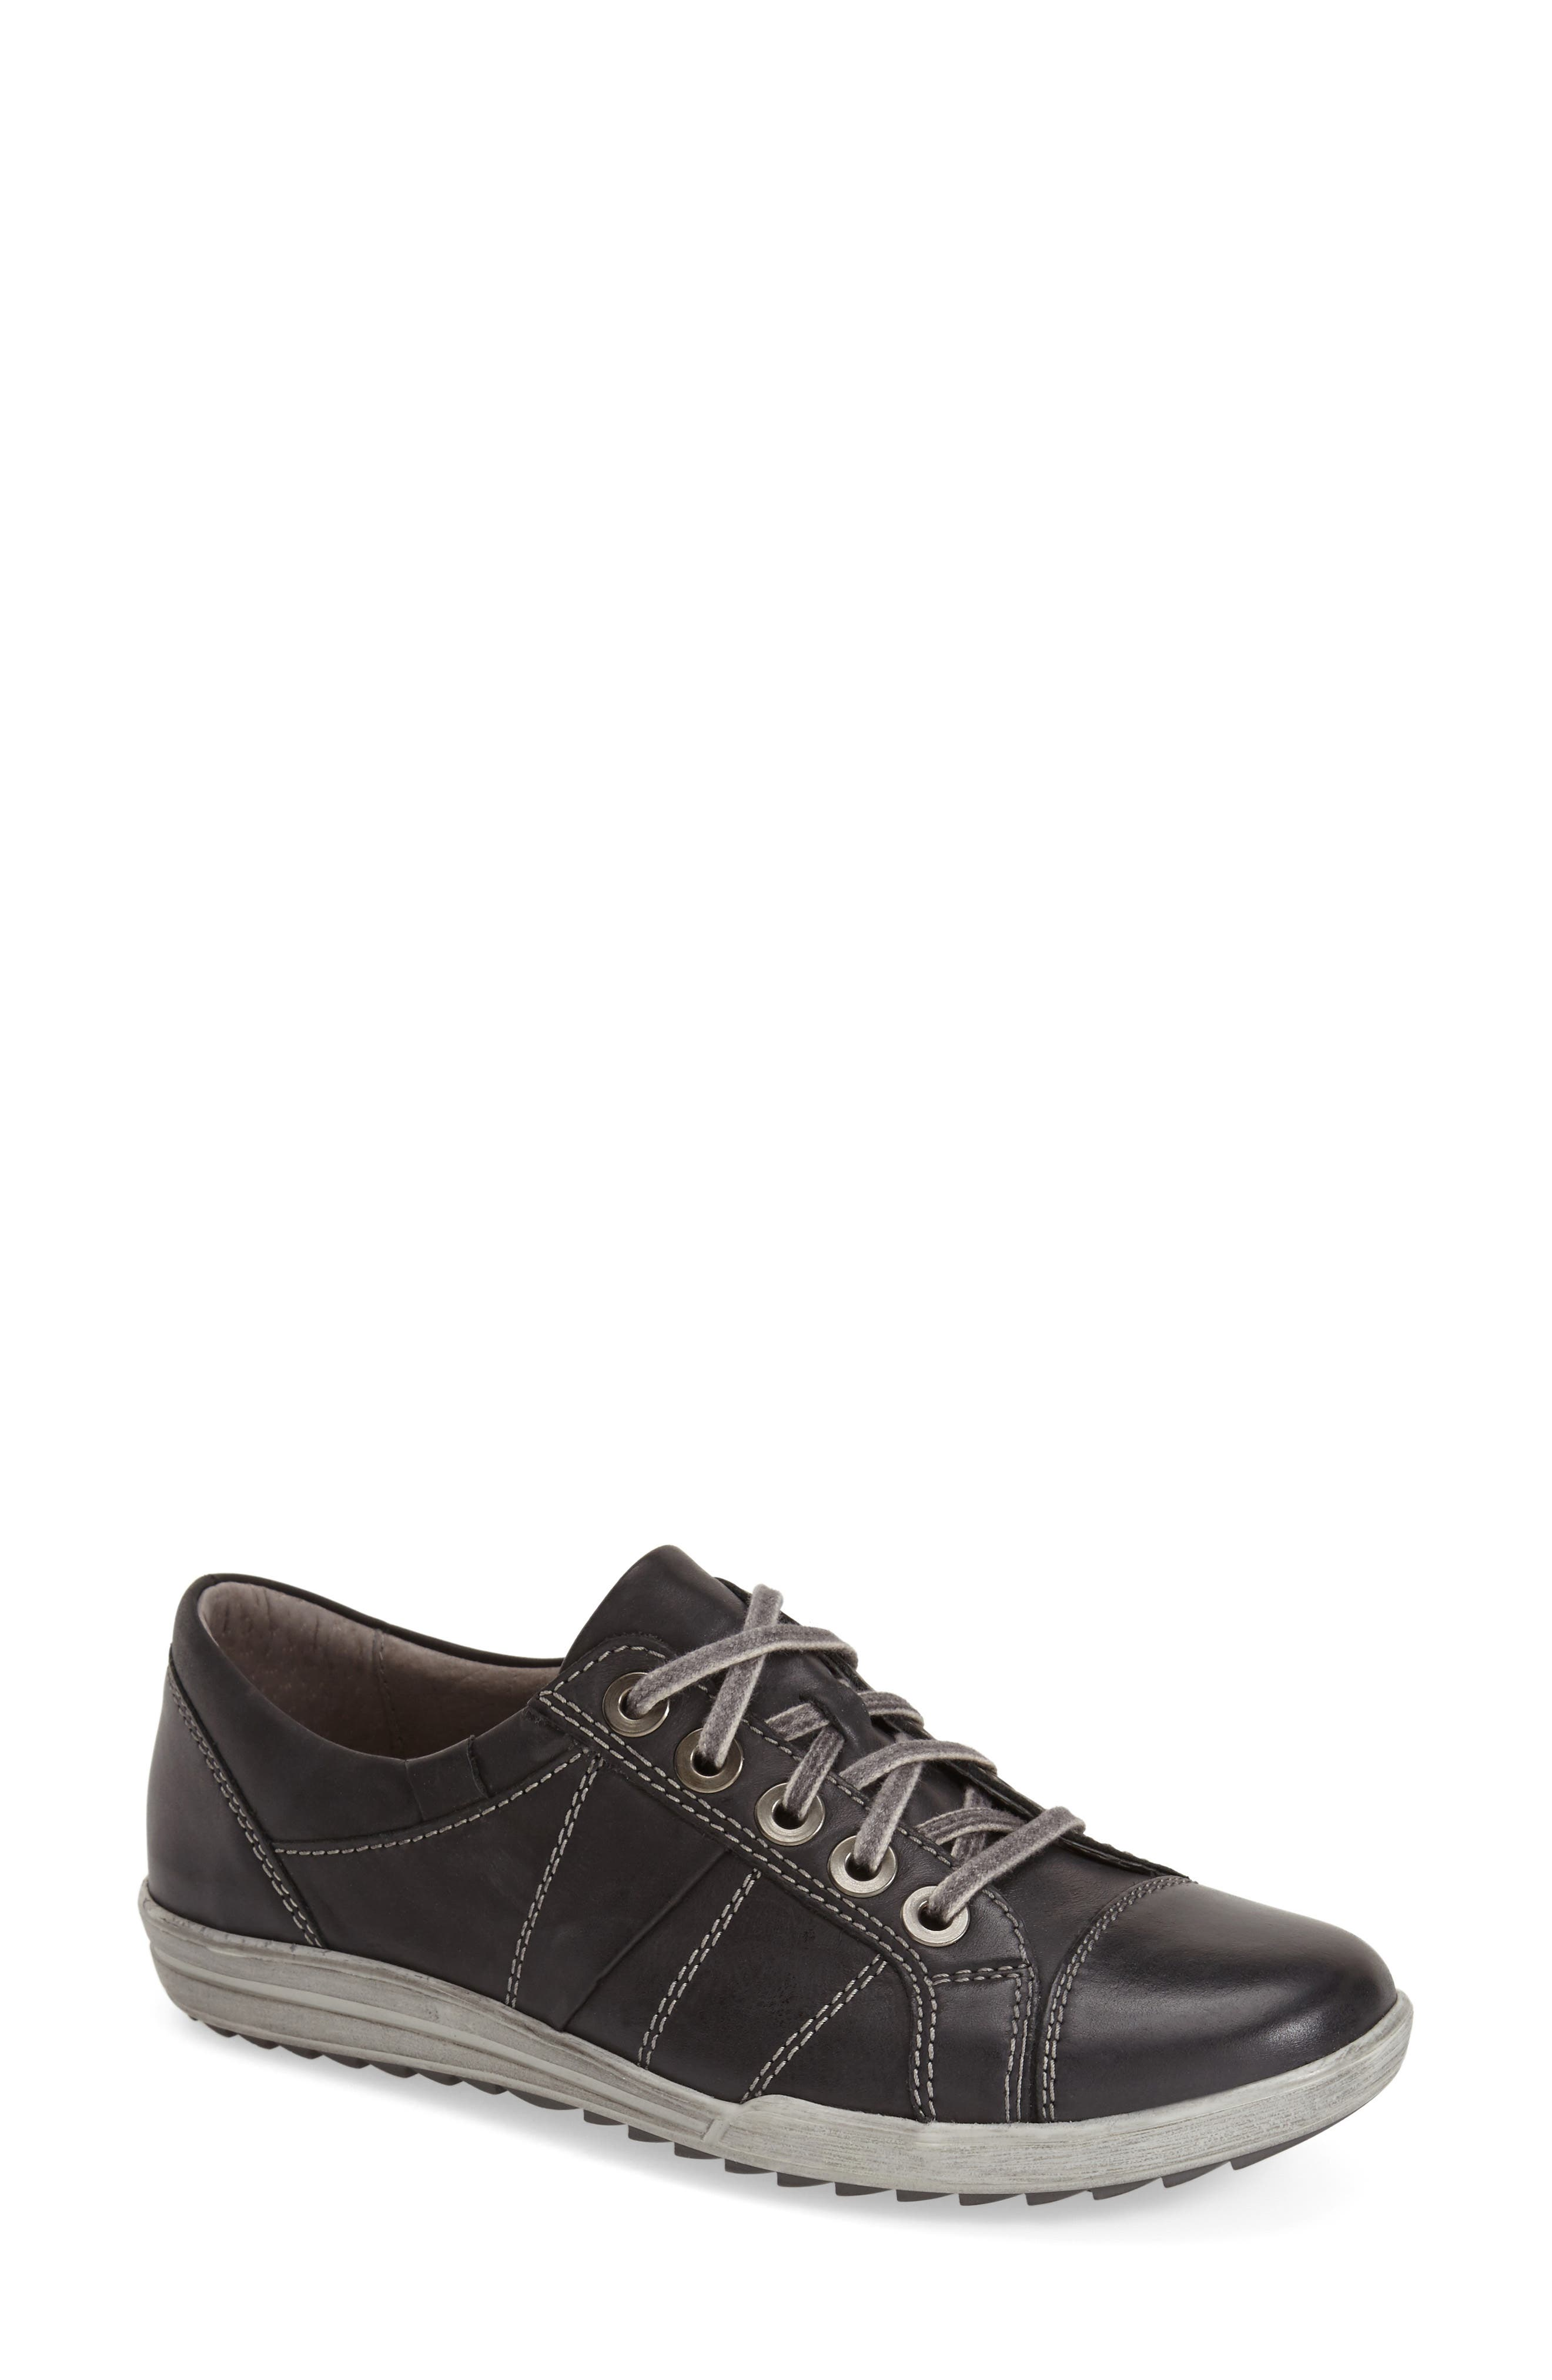 'Dany 05' Leather Sneaker,                             Alternate thumbnail 10, color,